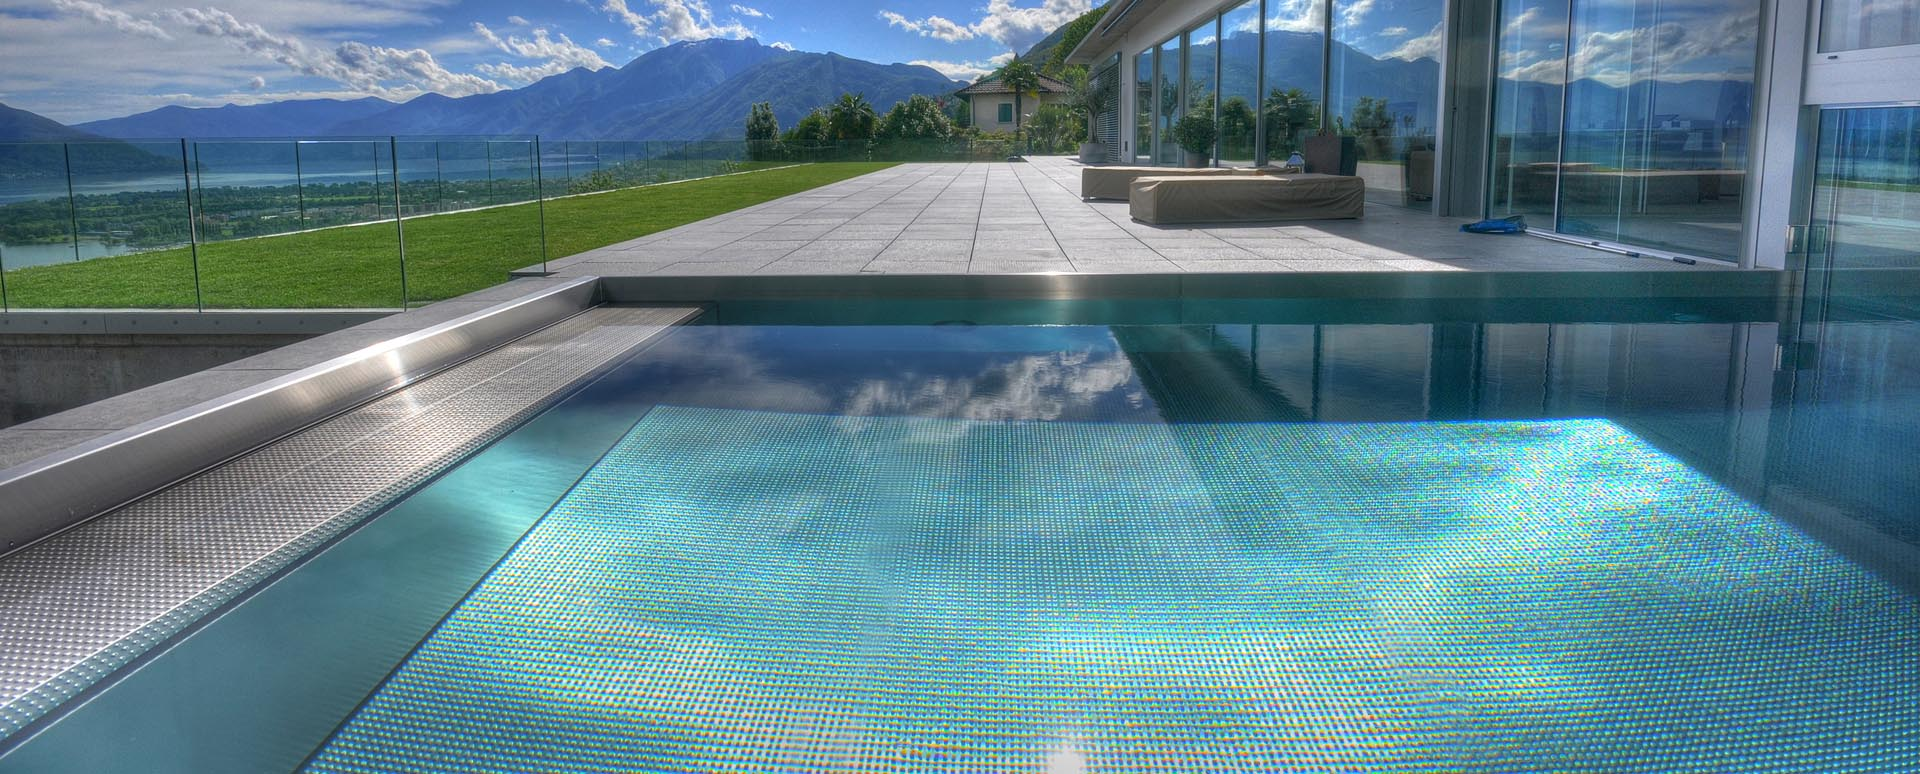 Stainless Steel Pools Polytherm